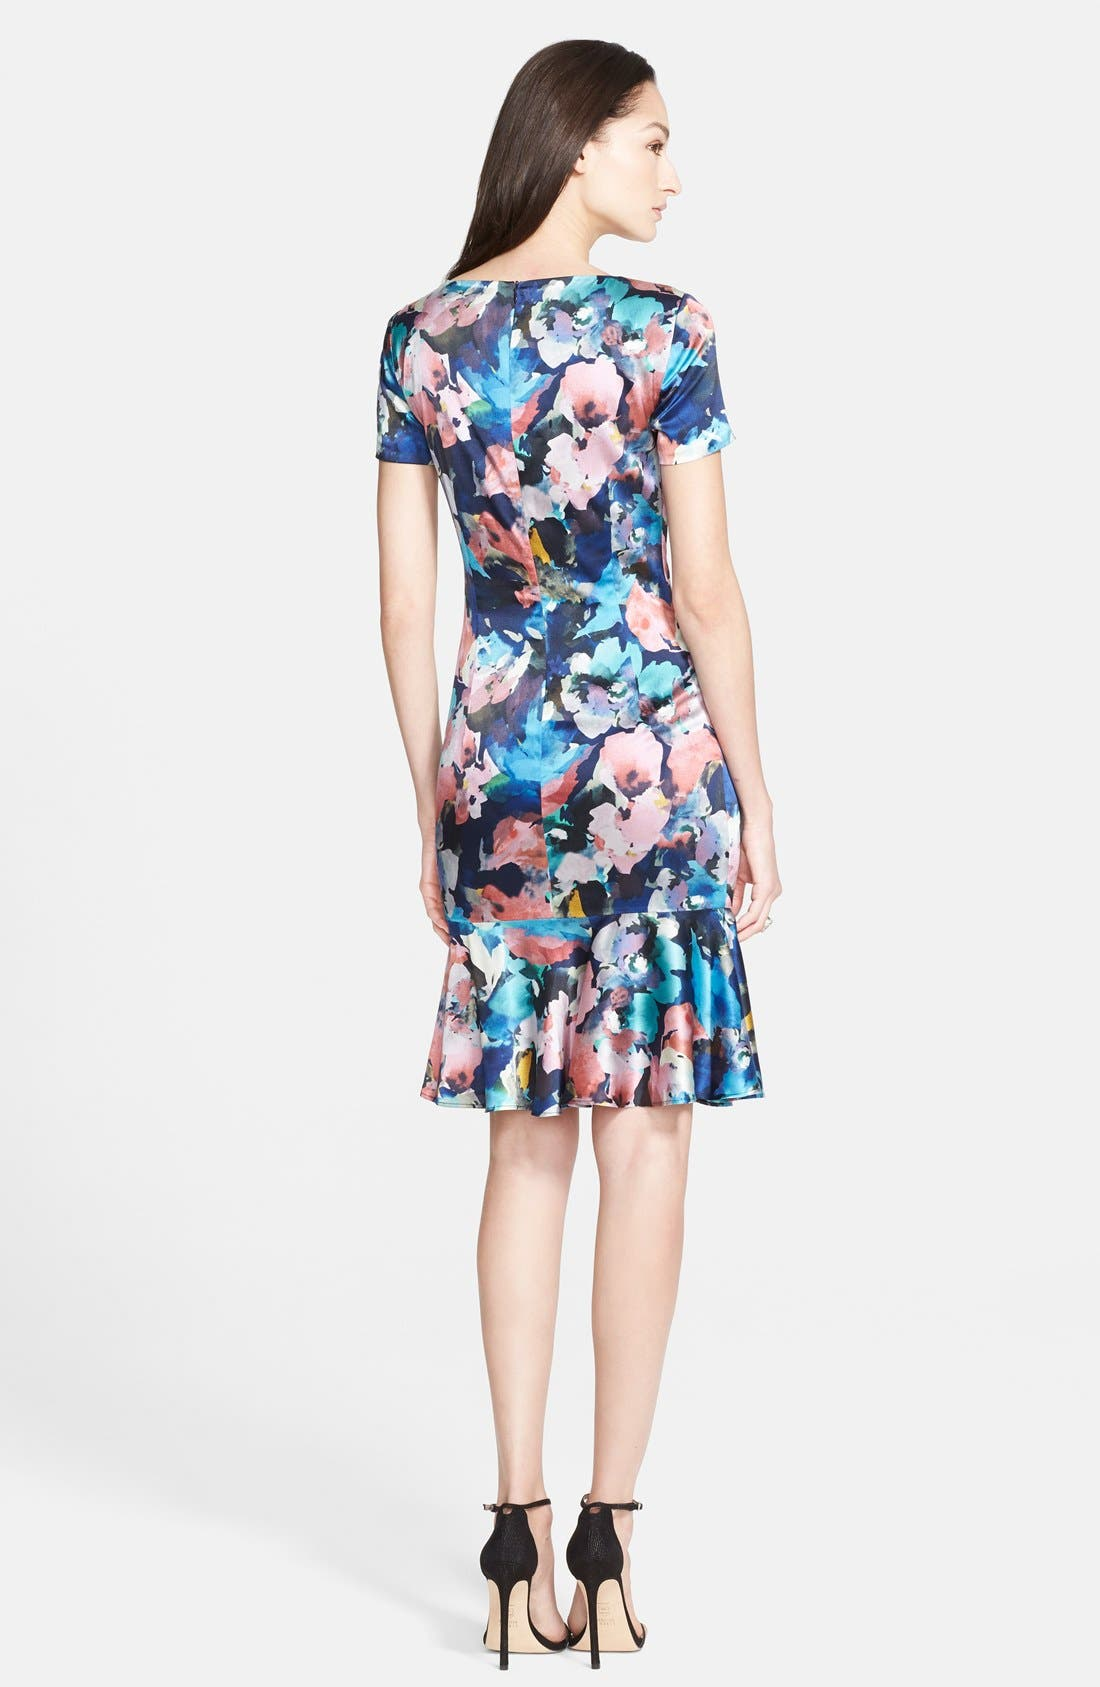 ST. JOHN COLLECTION,                             Collage Floral Print Stretch Silk Charmeuse Dress,                             Alternate thumbnail 3, color,                             020